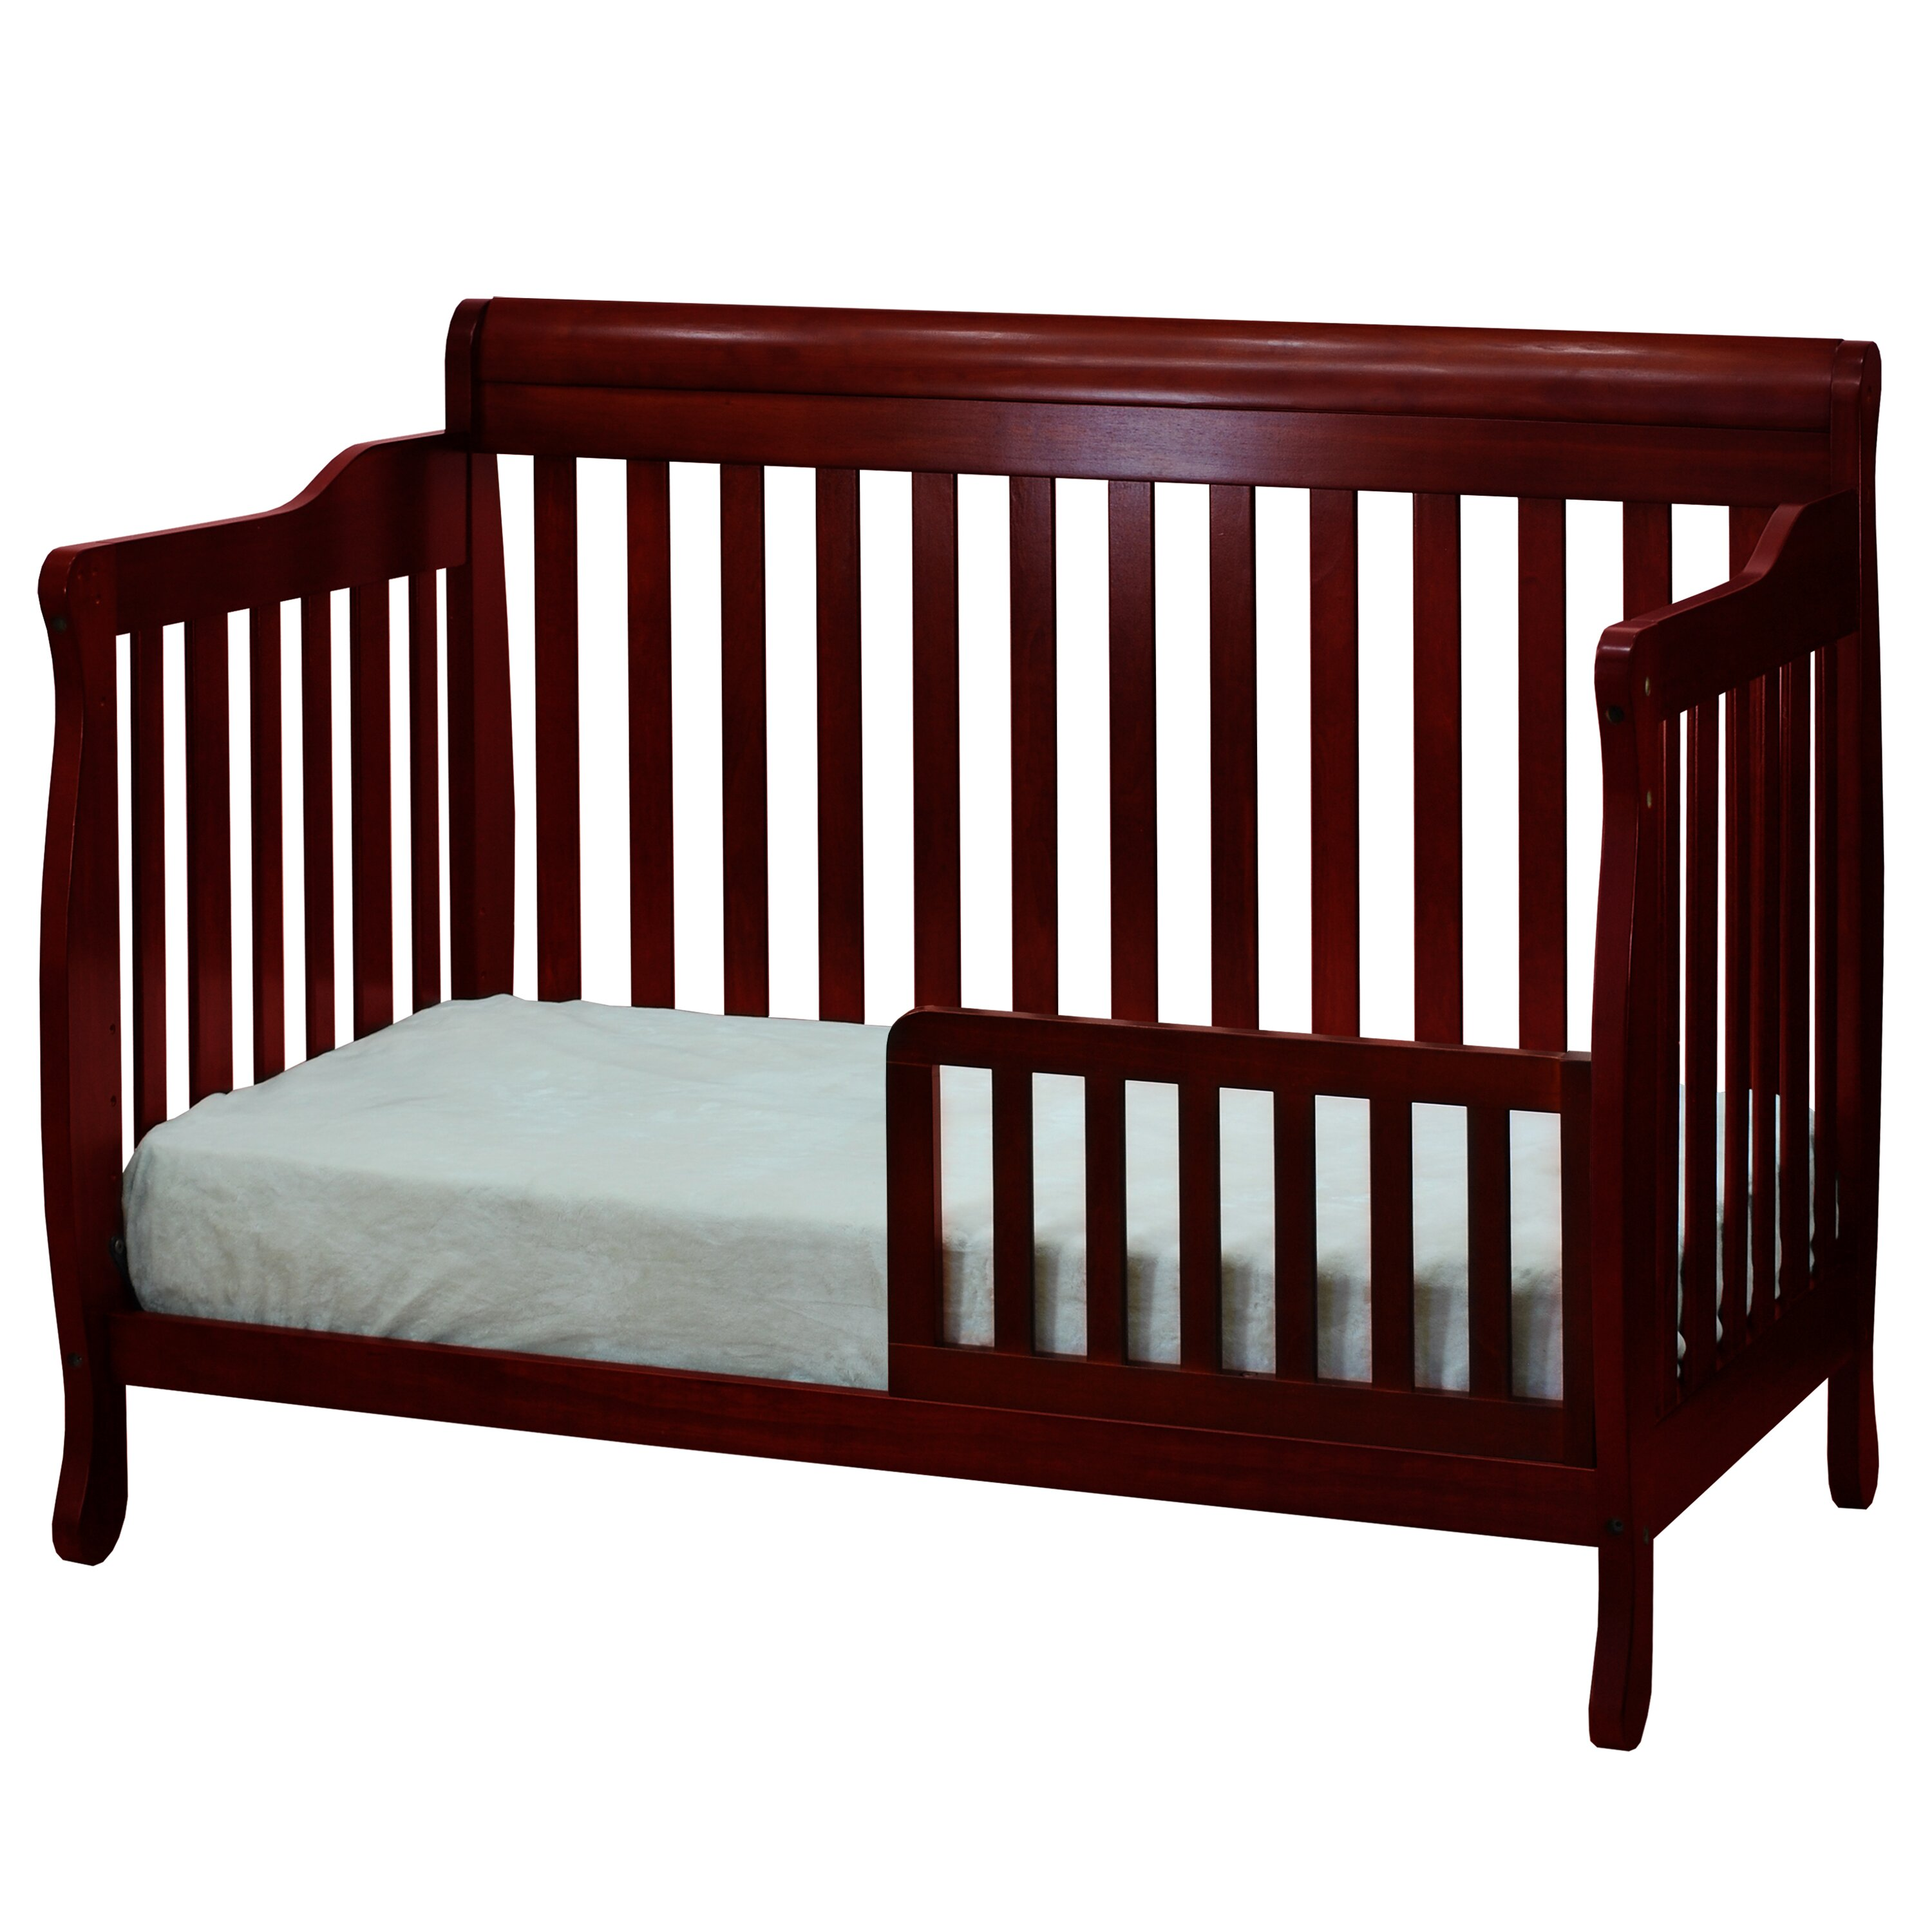 Crib for sale in palm bay - Crib For Sale In Palm Bay Fl Afg Baby Furniture Alice Grace 2 Piece Convertible